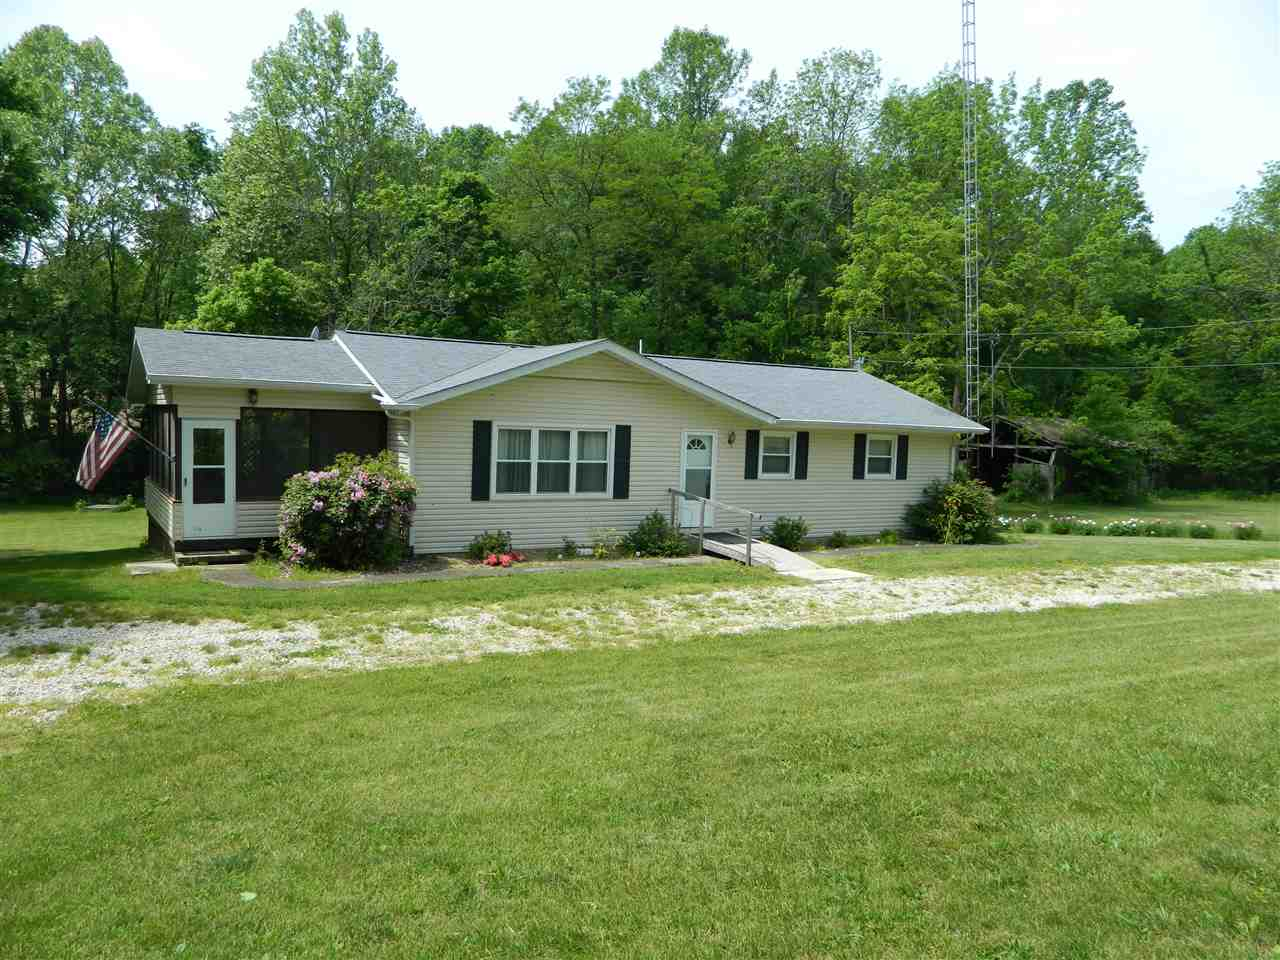 28 Keith Rd, Williams, IN 47470